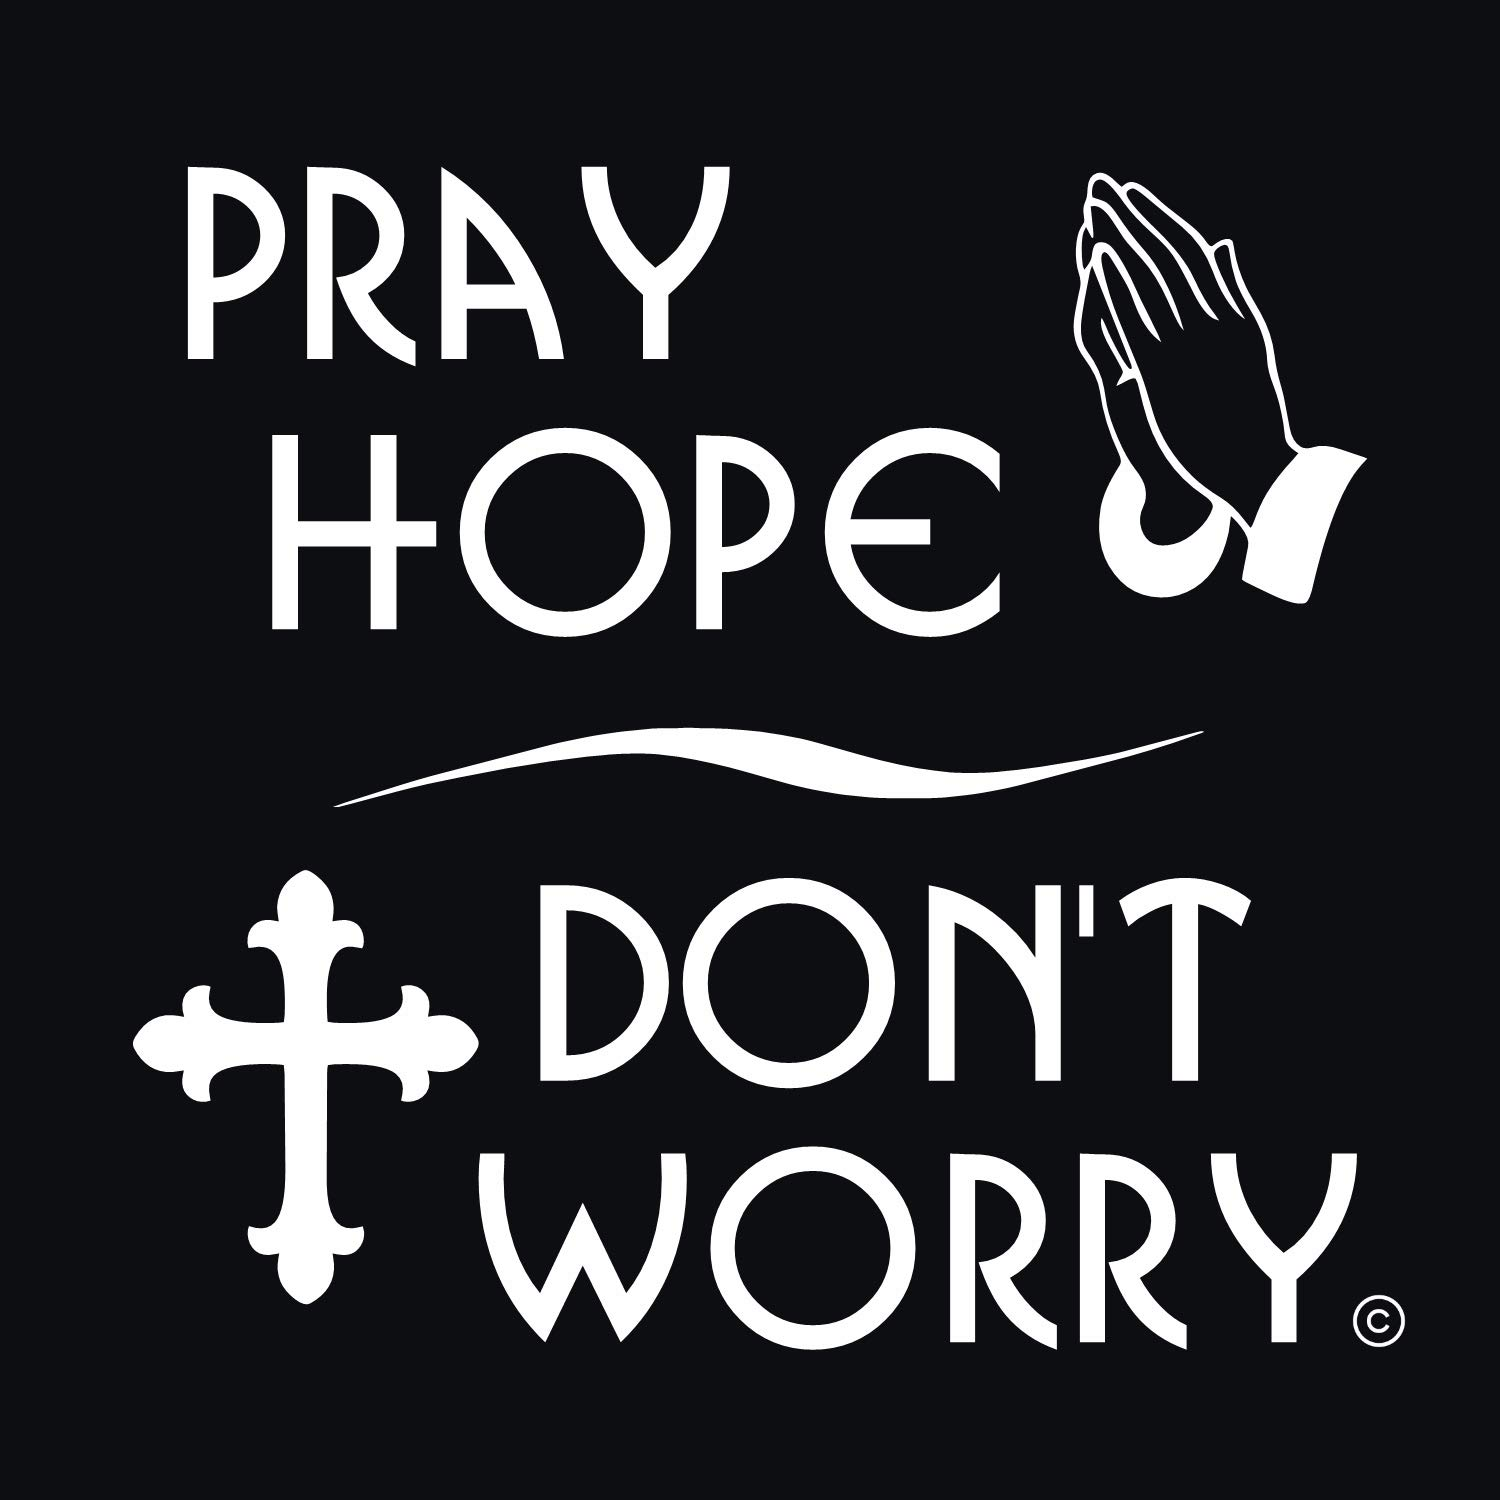 Amazon A Religious Inspirational Quotes Decal Pray Hope Dont